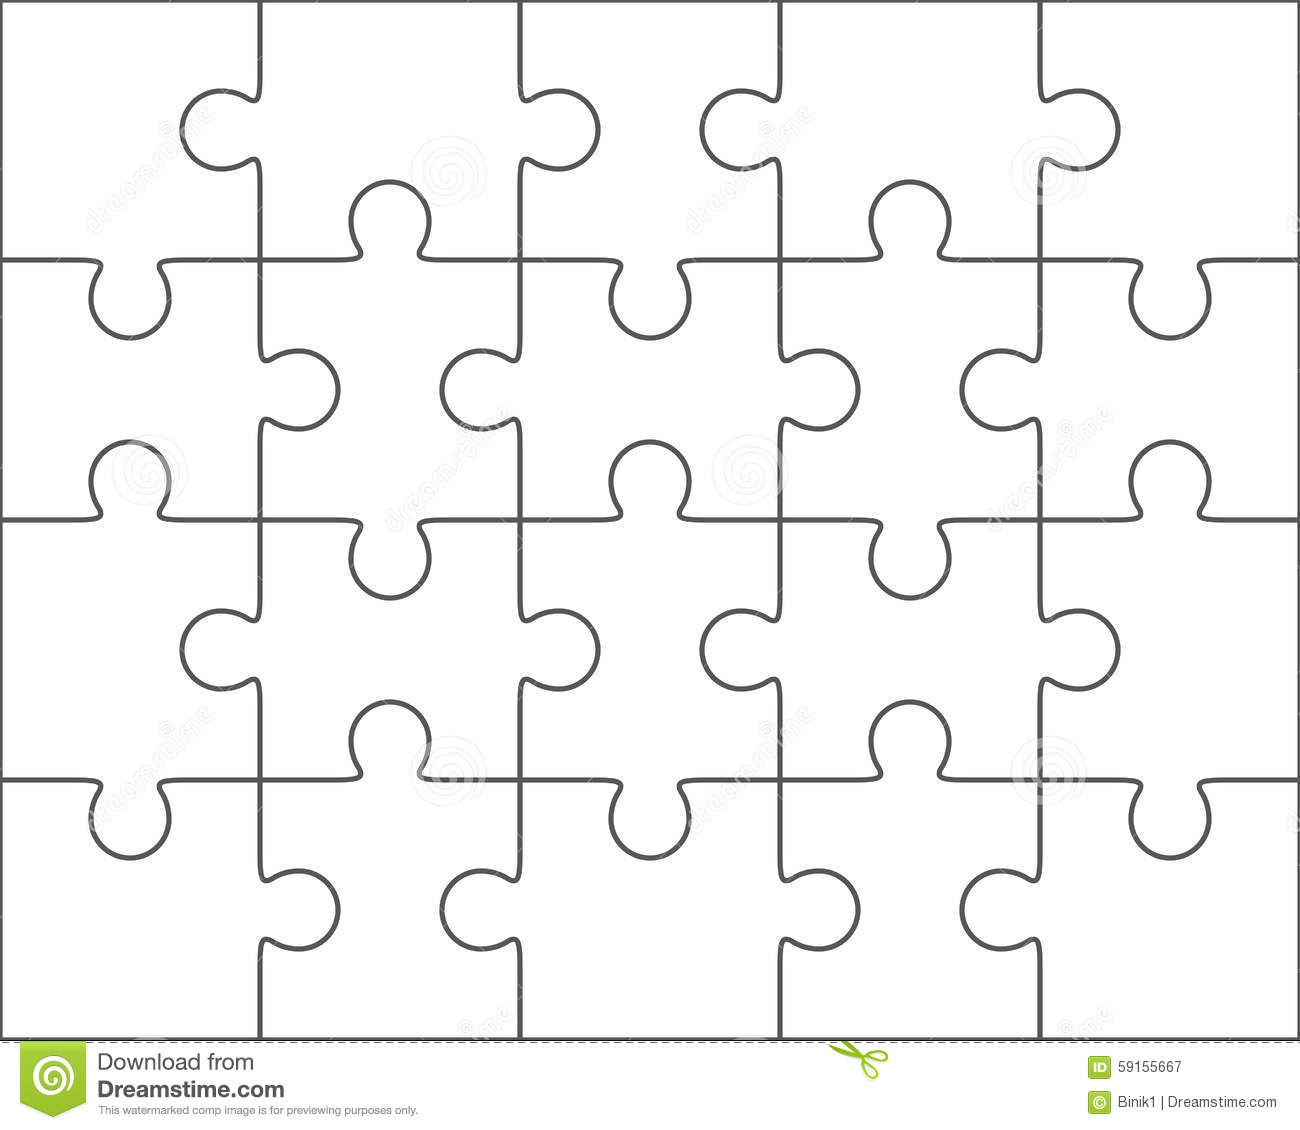 010 Jig Saw Puzzle Template Jigsaw Blank Twenty Pieces Simple Best - Printable Jigsaw Puzzle Template Generator